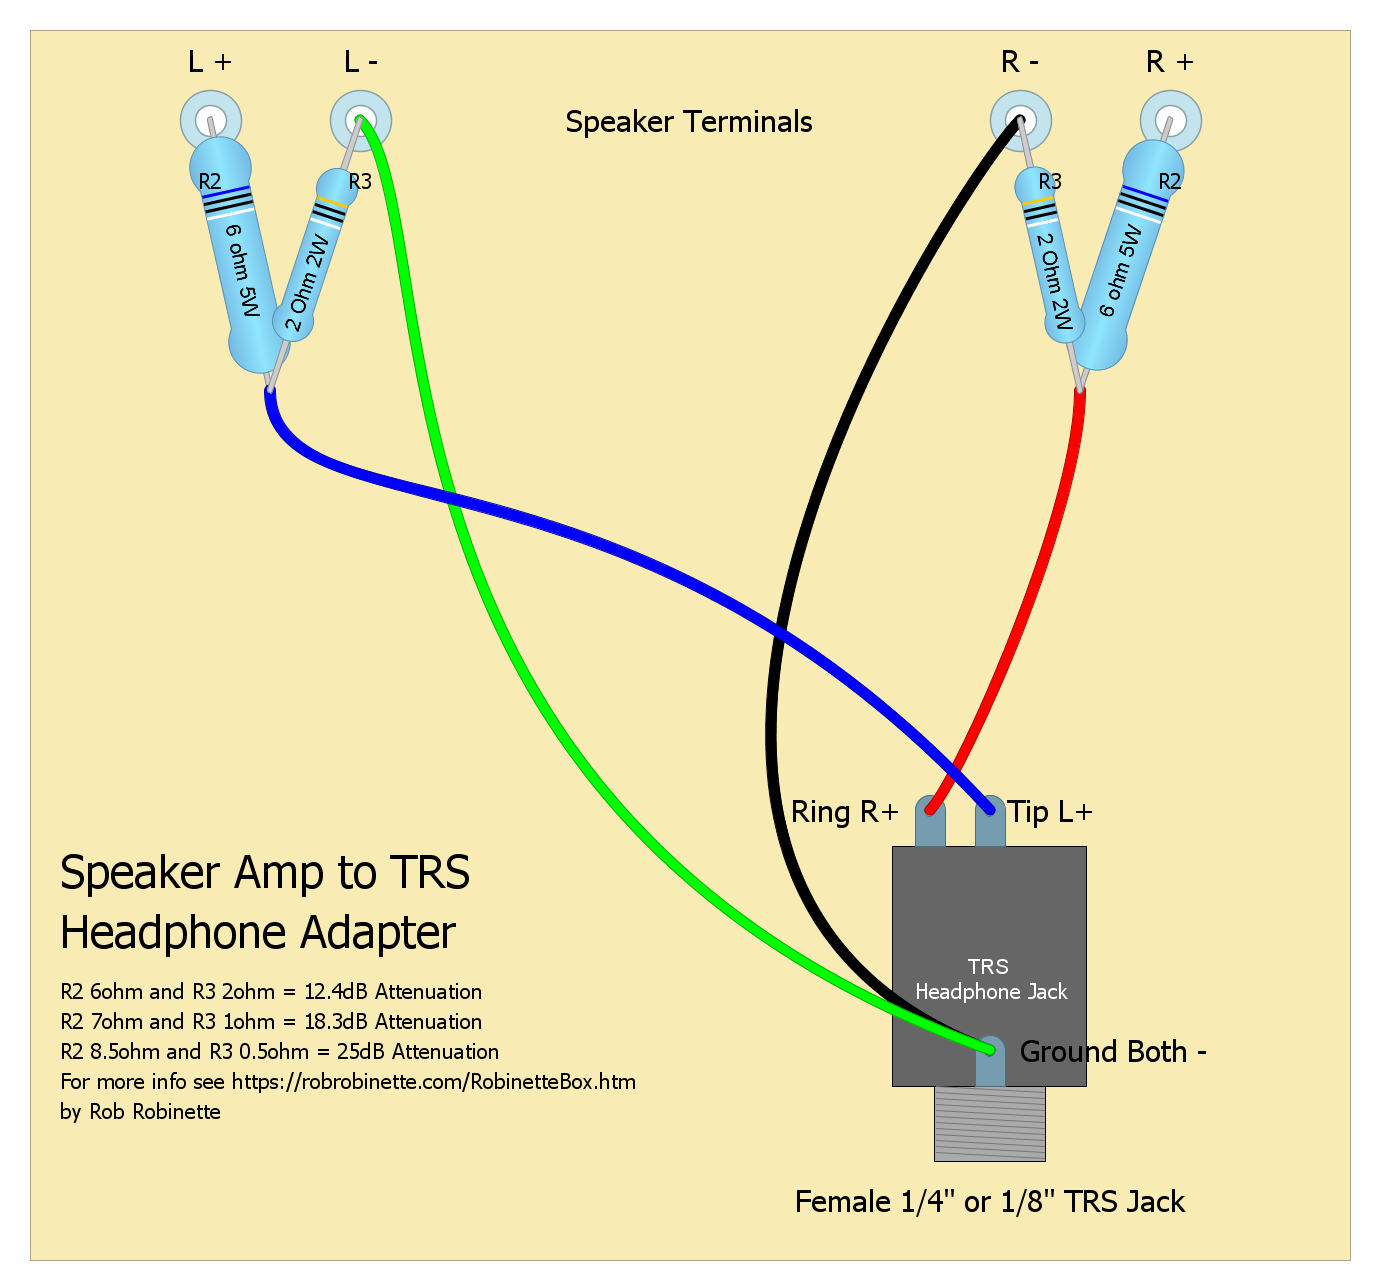 Basic Speaker Amp to Headphone Adapter - Single Ended TRS